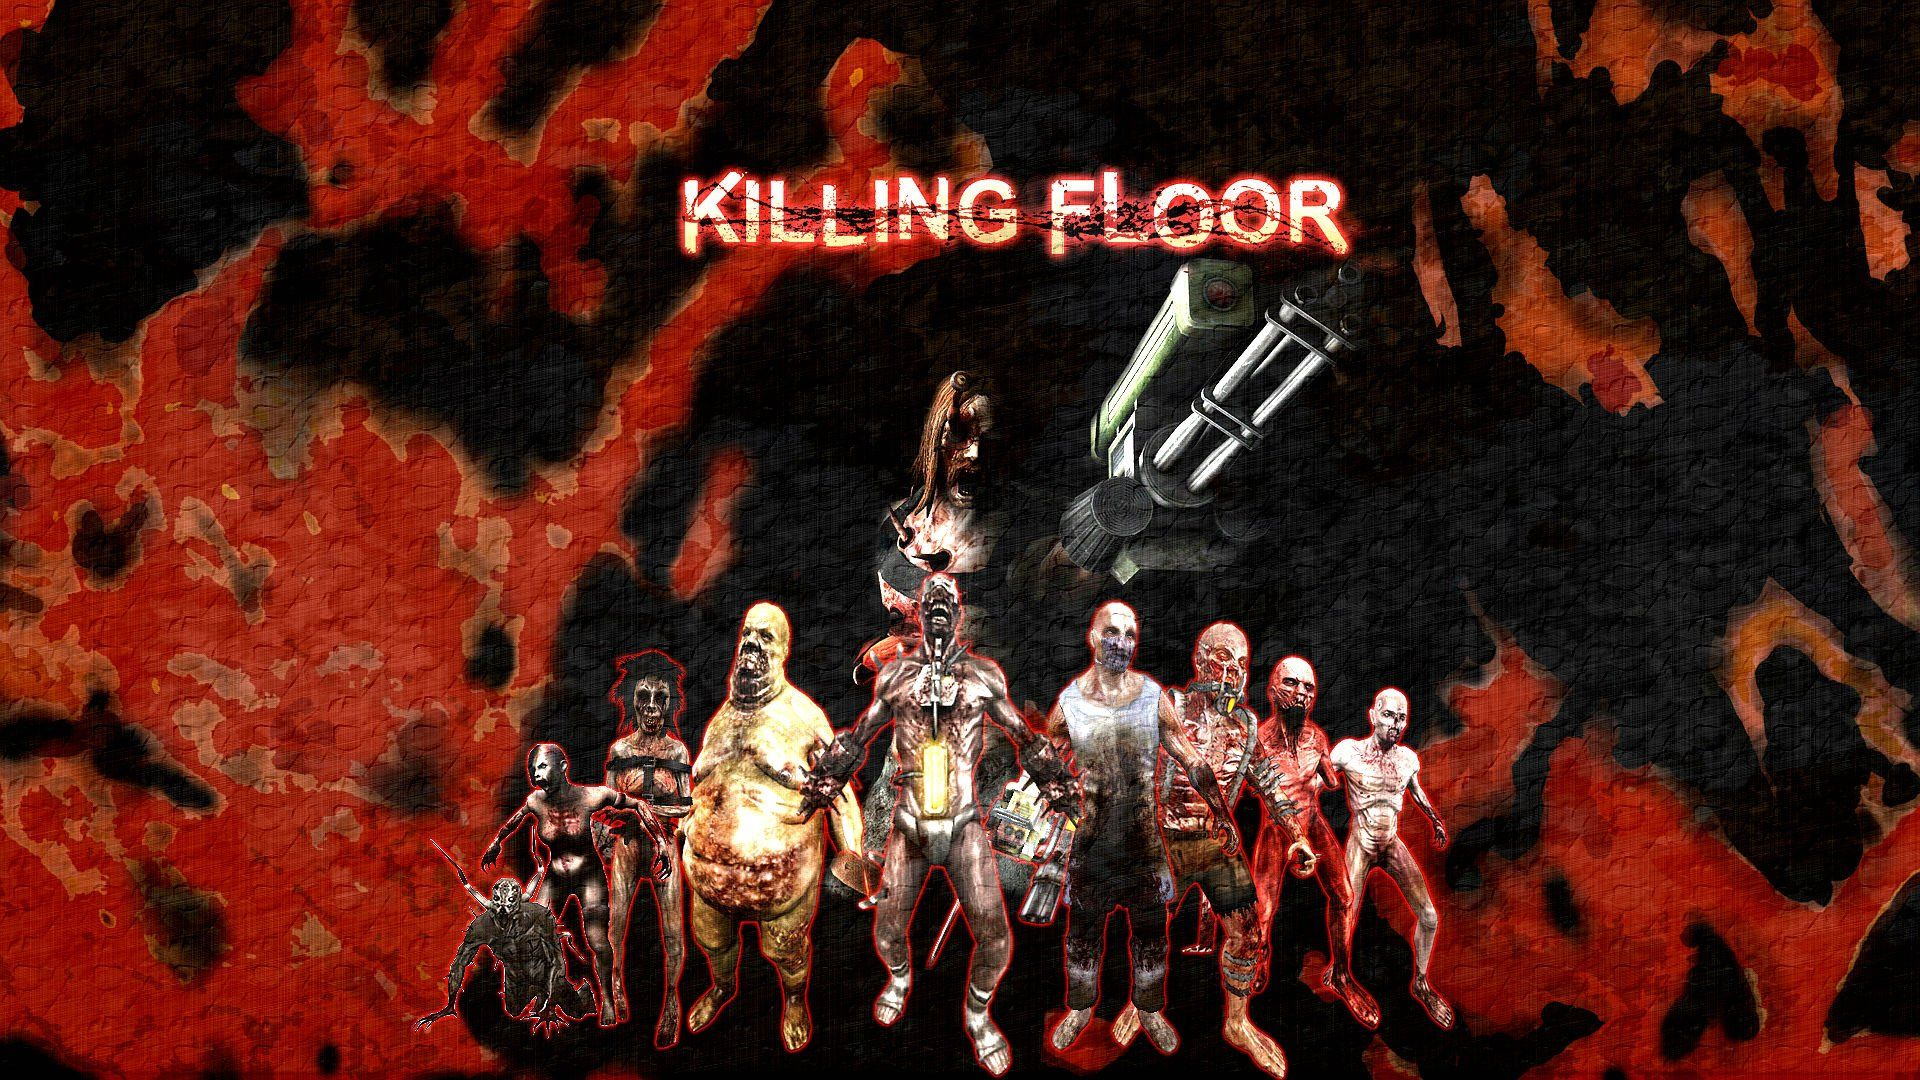 Killing Floor 2 Wallpapers Top Free Killing Floor 2 Backgrounds